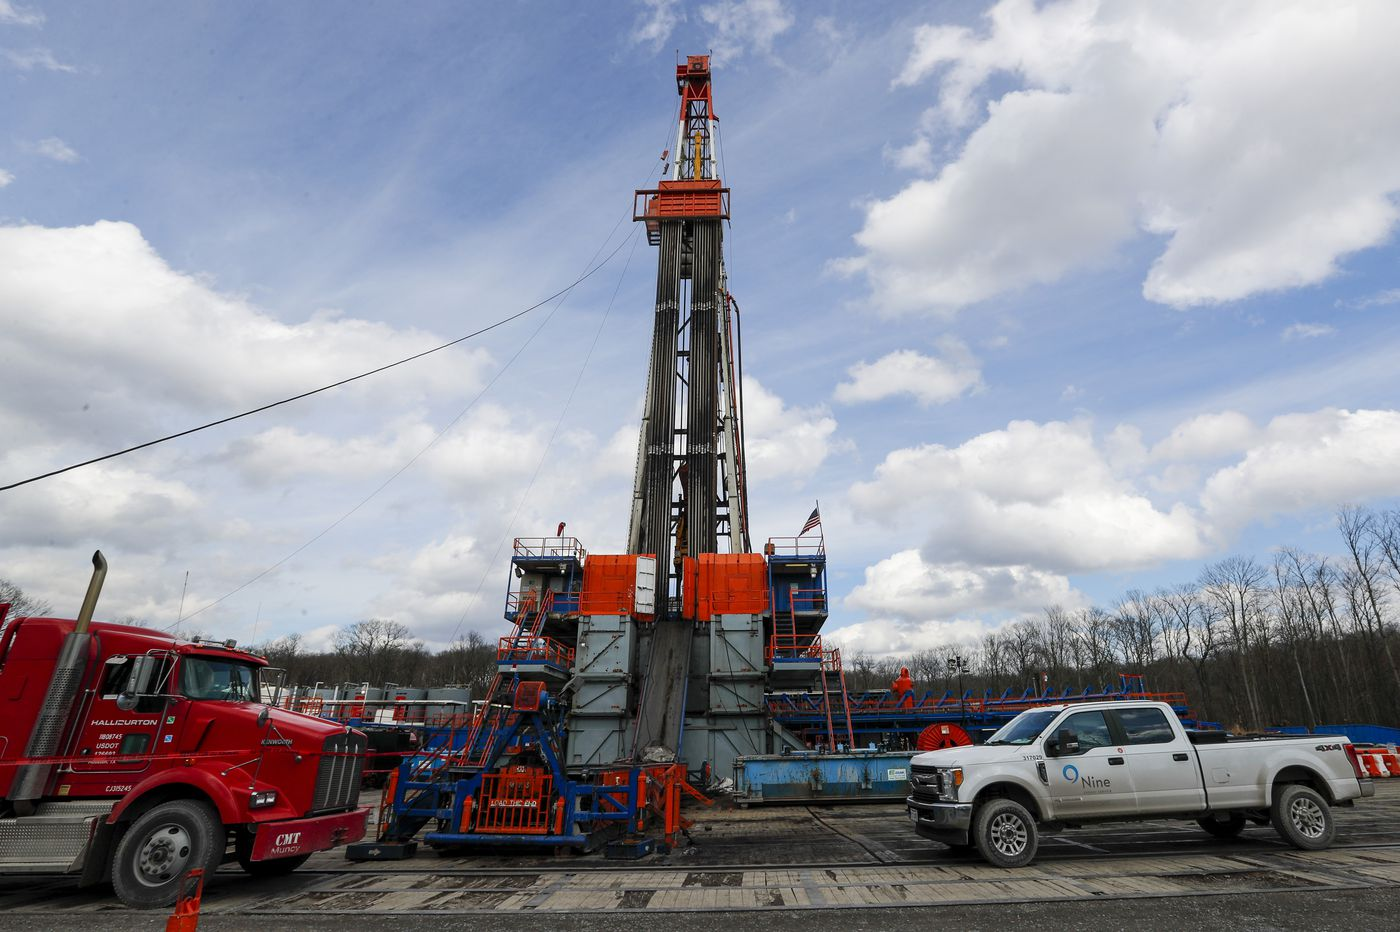 Pennsylvania's attorney general releases scathing grand jury report on fracking industry, state regulators